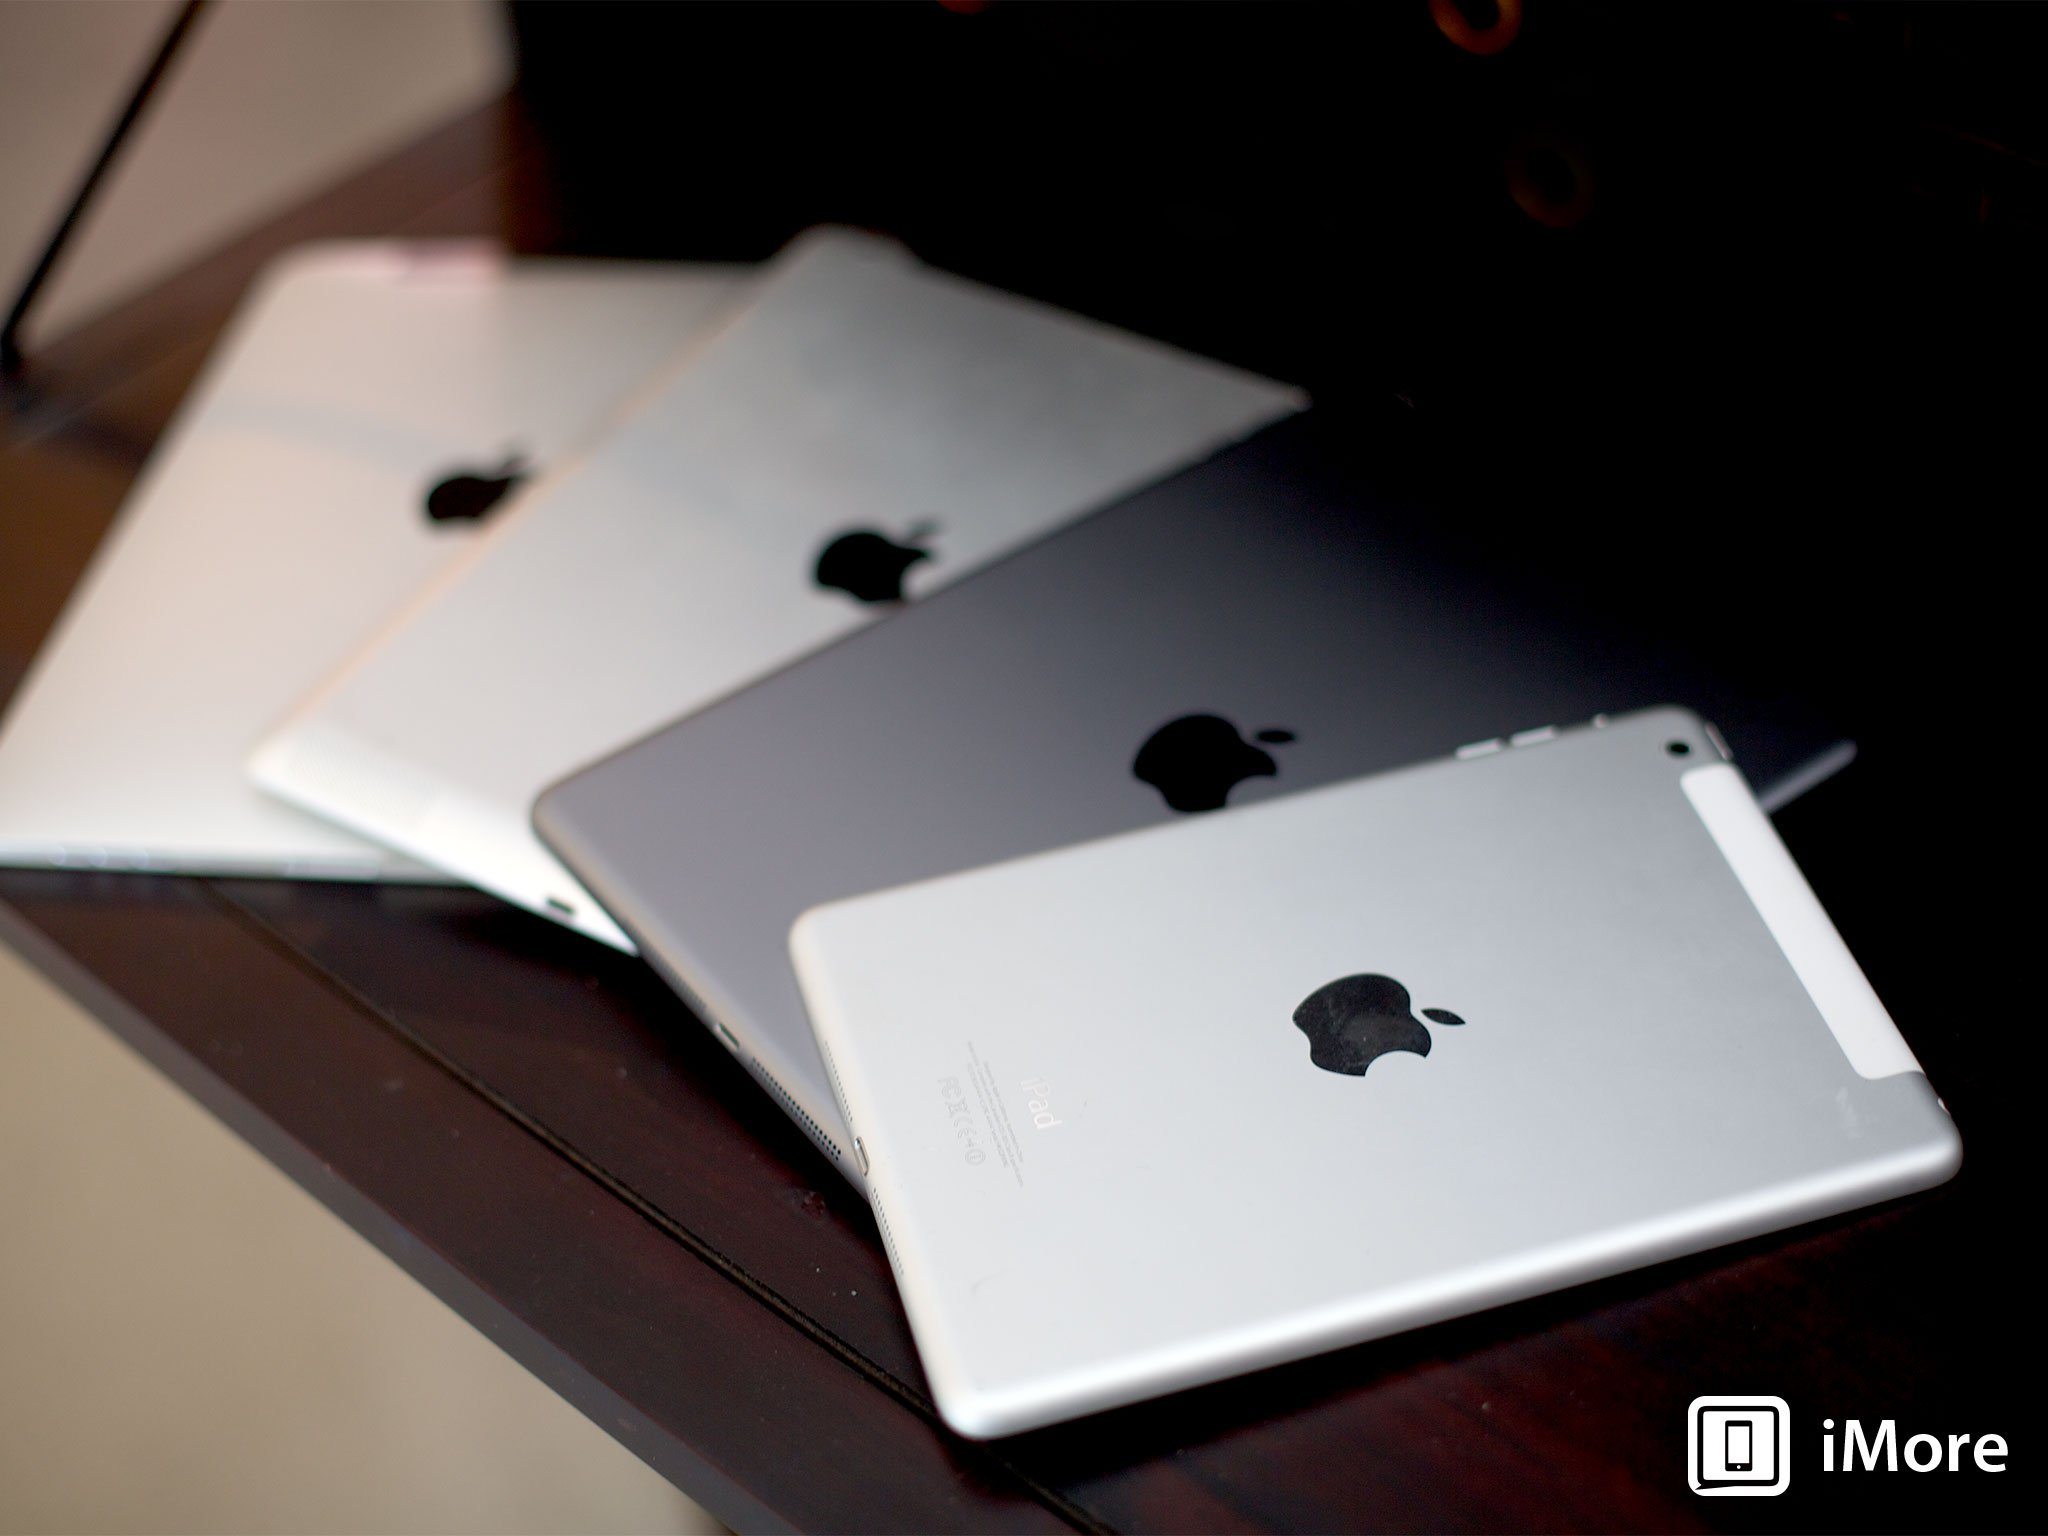 iPad Air: Design evolution